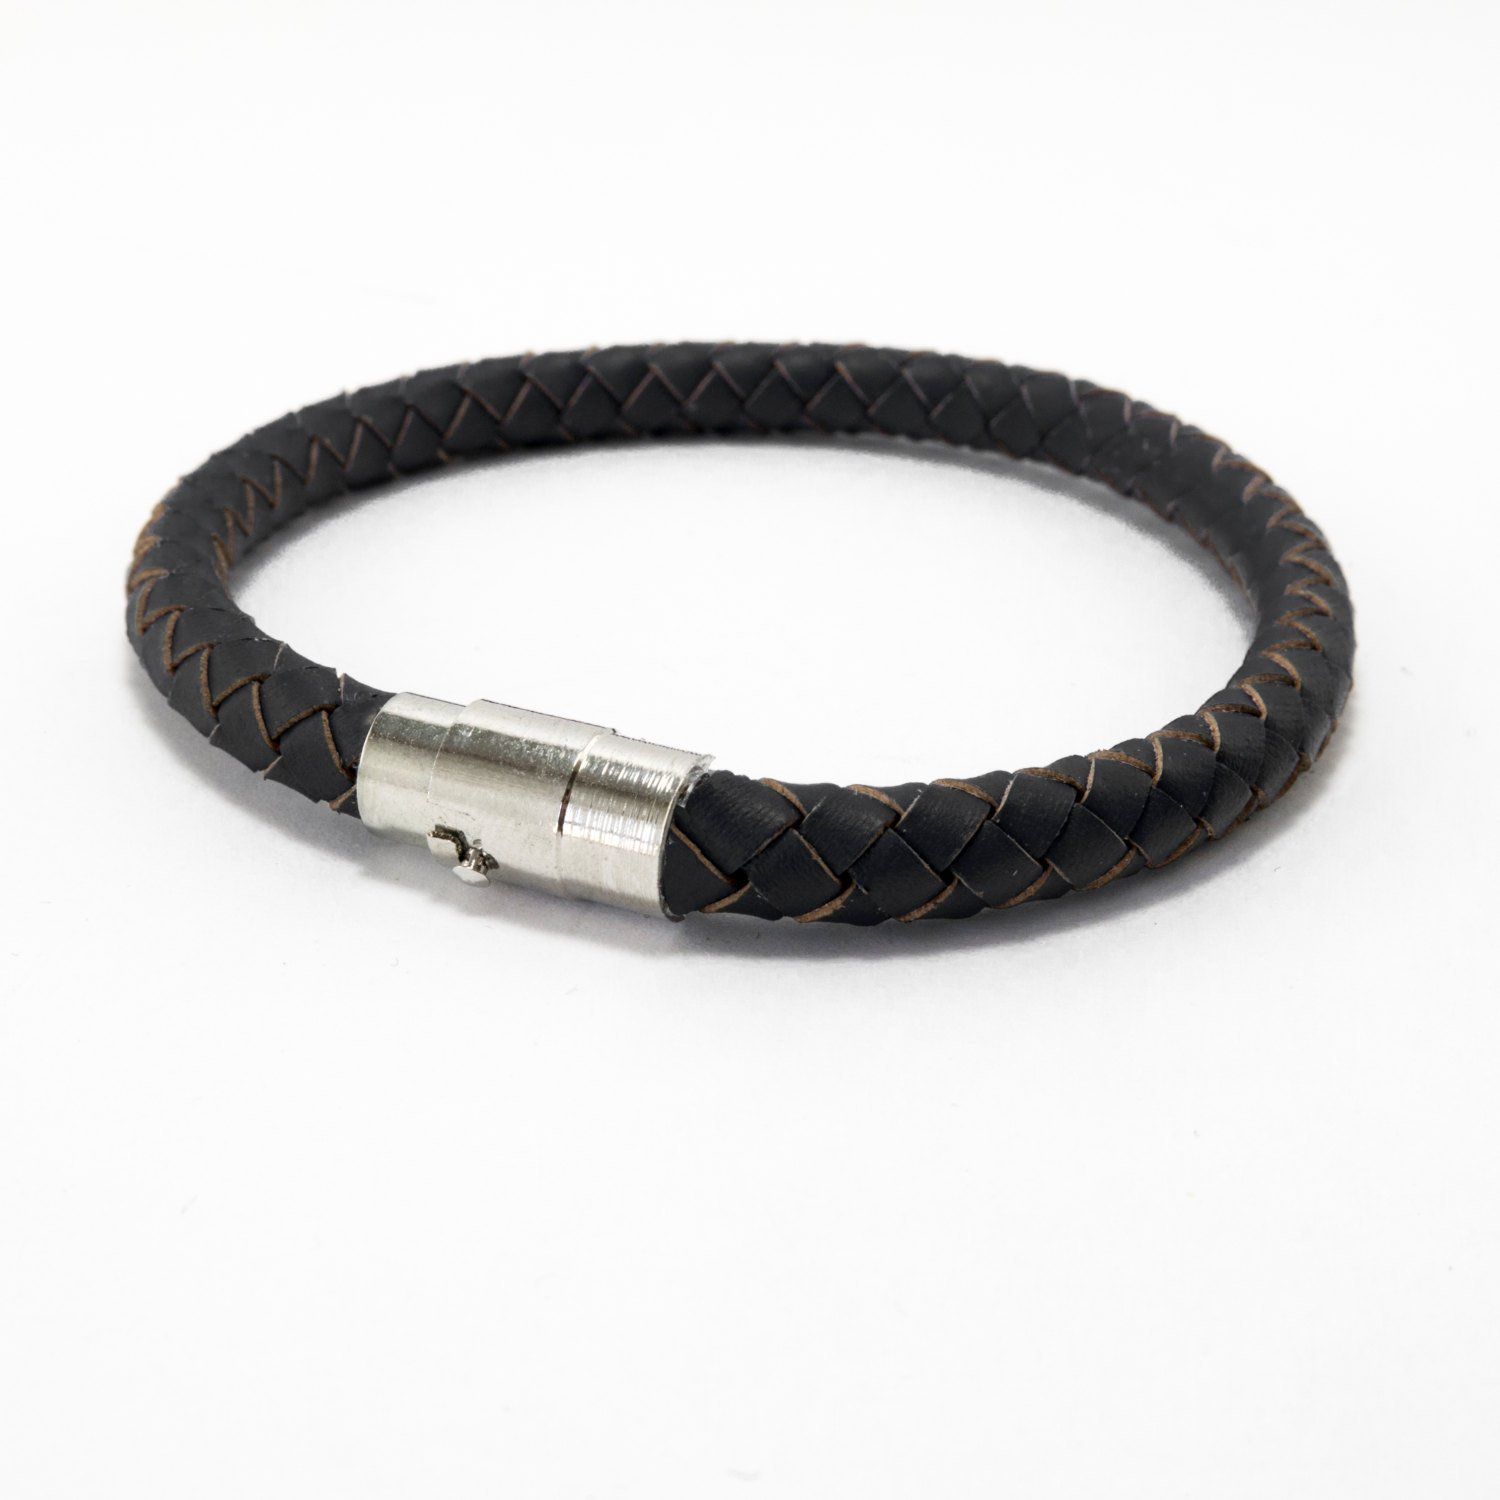 Men Bracelet - Men Jewelry - Men Leather Bracelet - Men Gift - Bracelets For Men